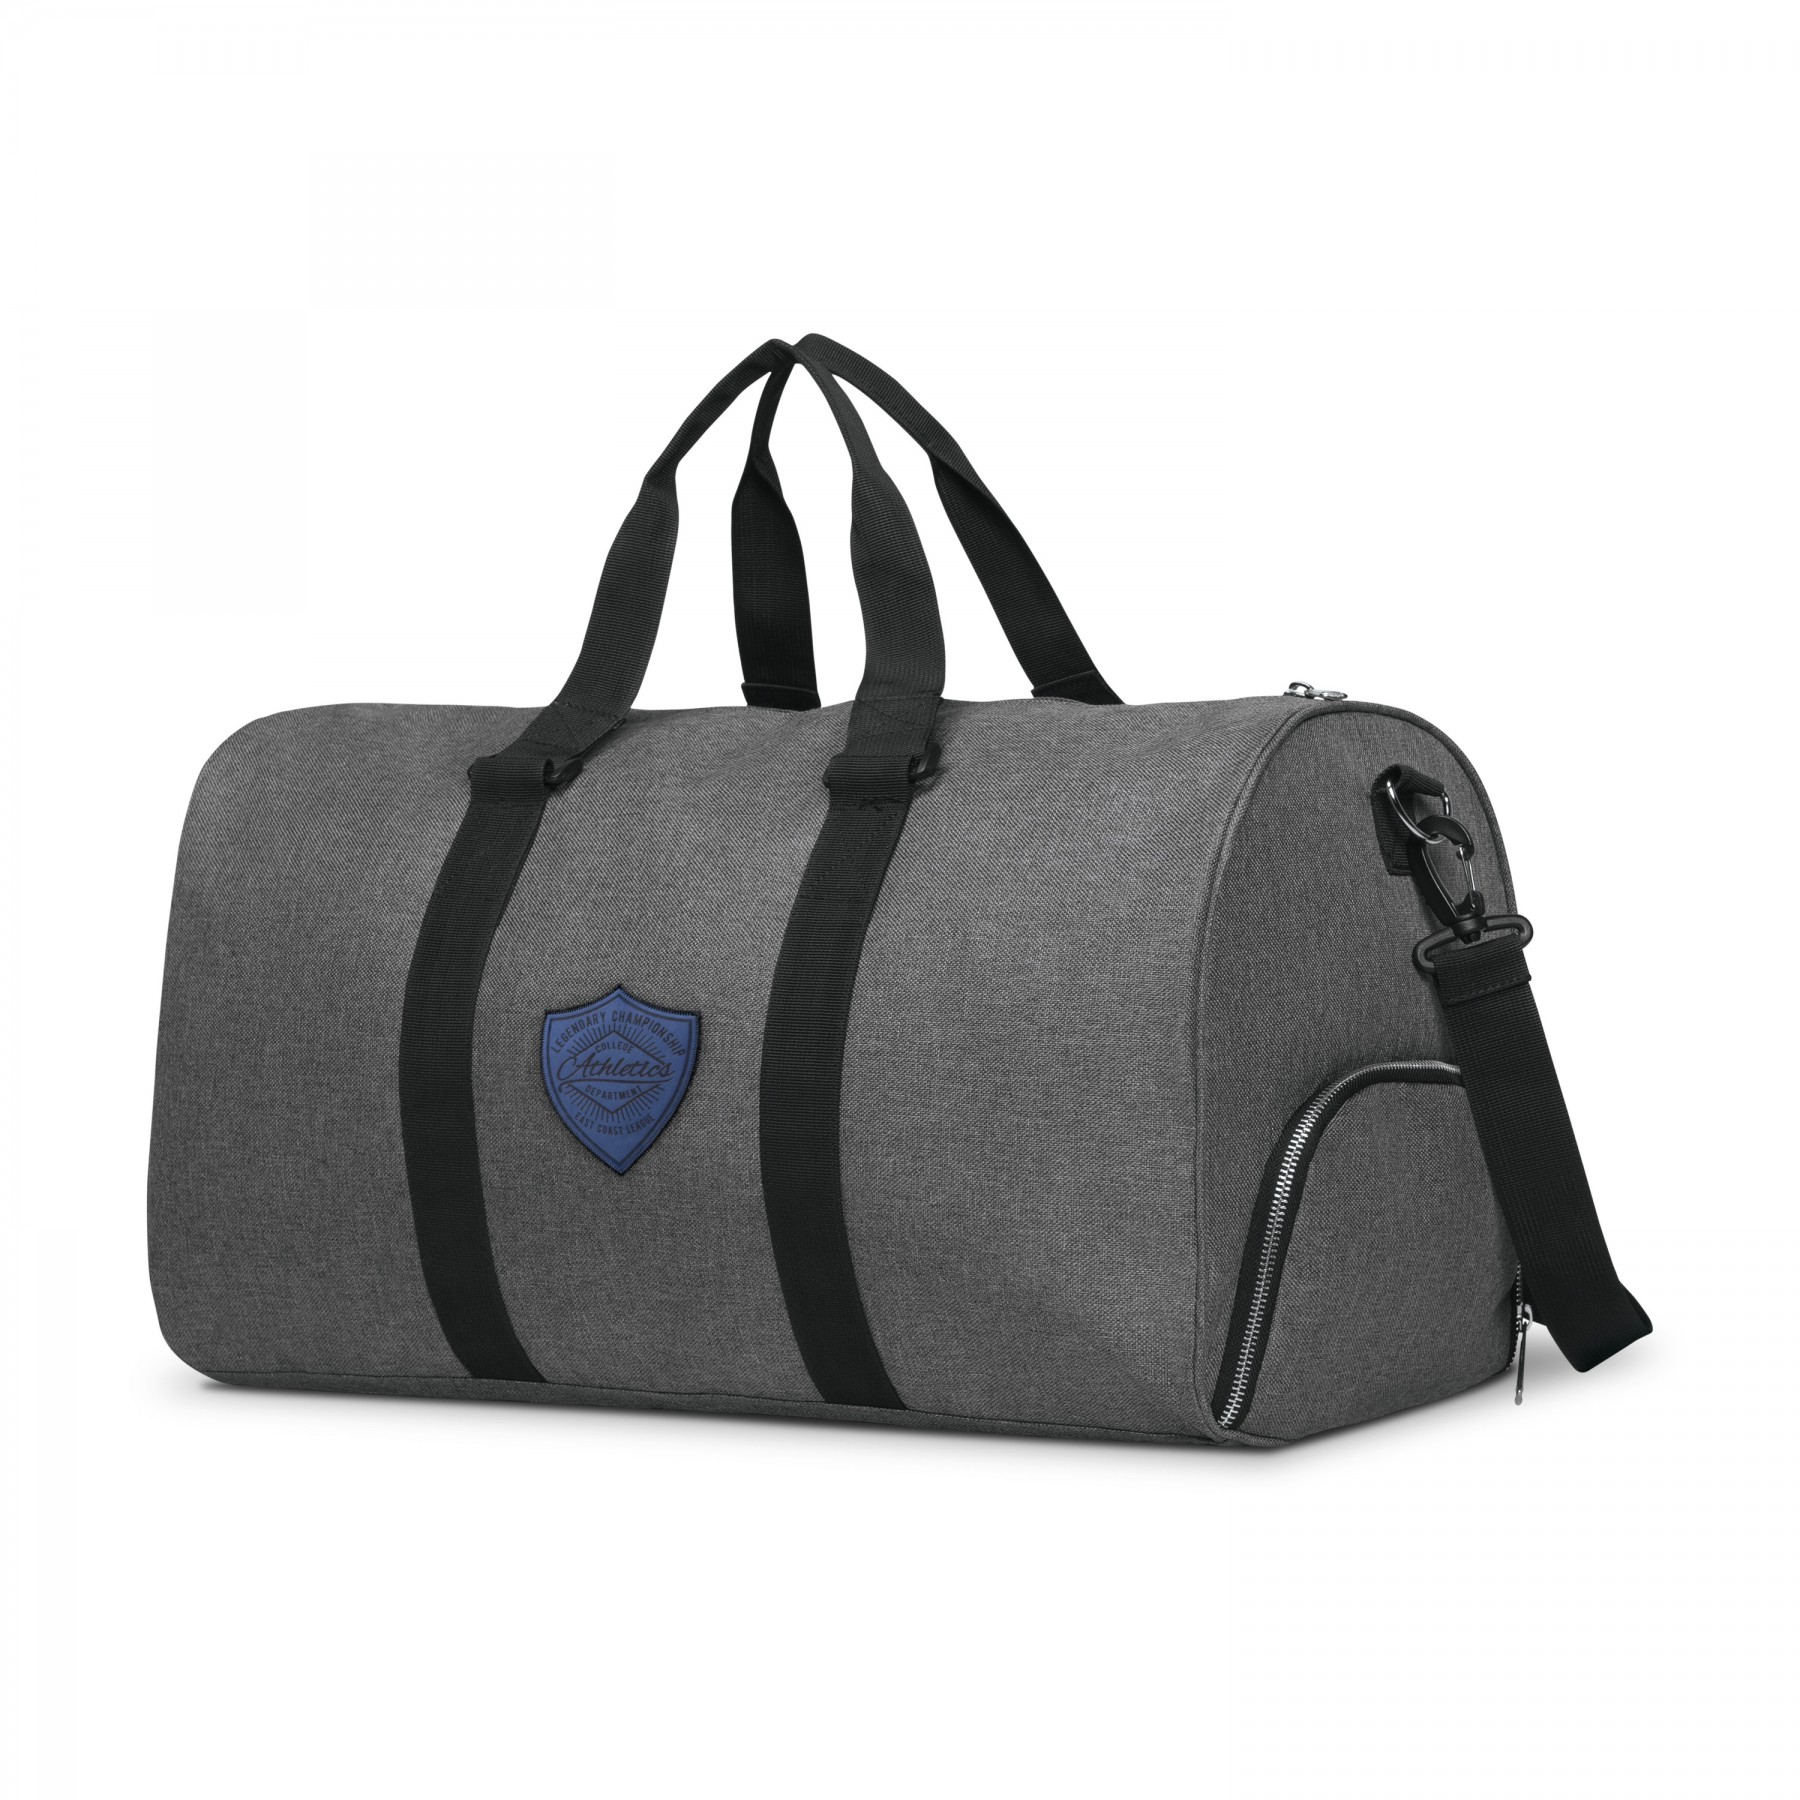 Nomad Must Haves Duffle, BG204, One Colour Imprint